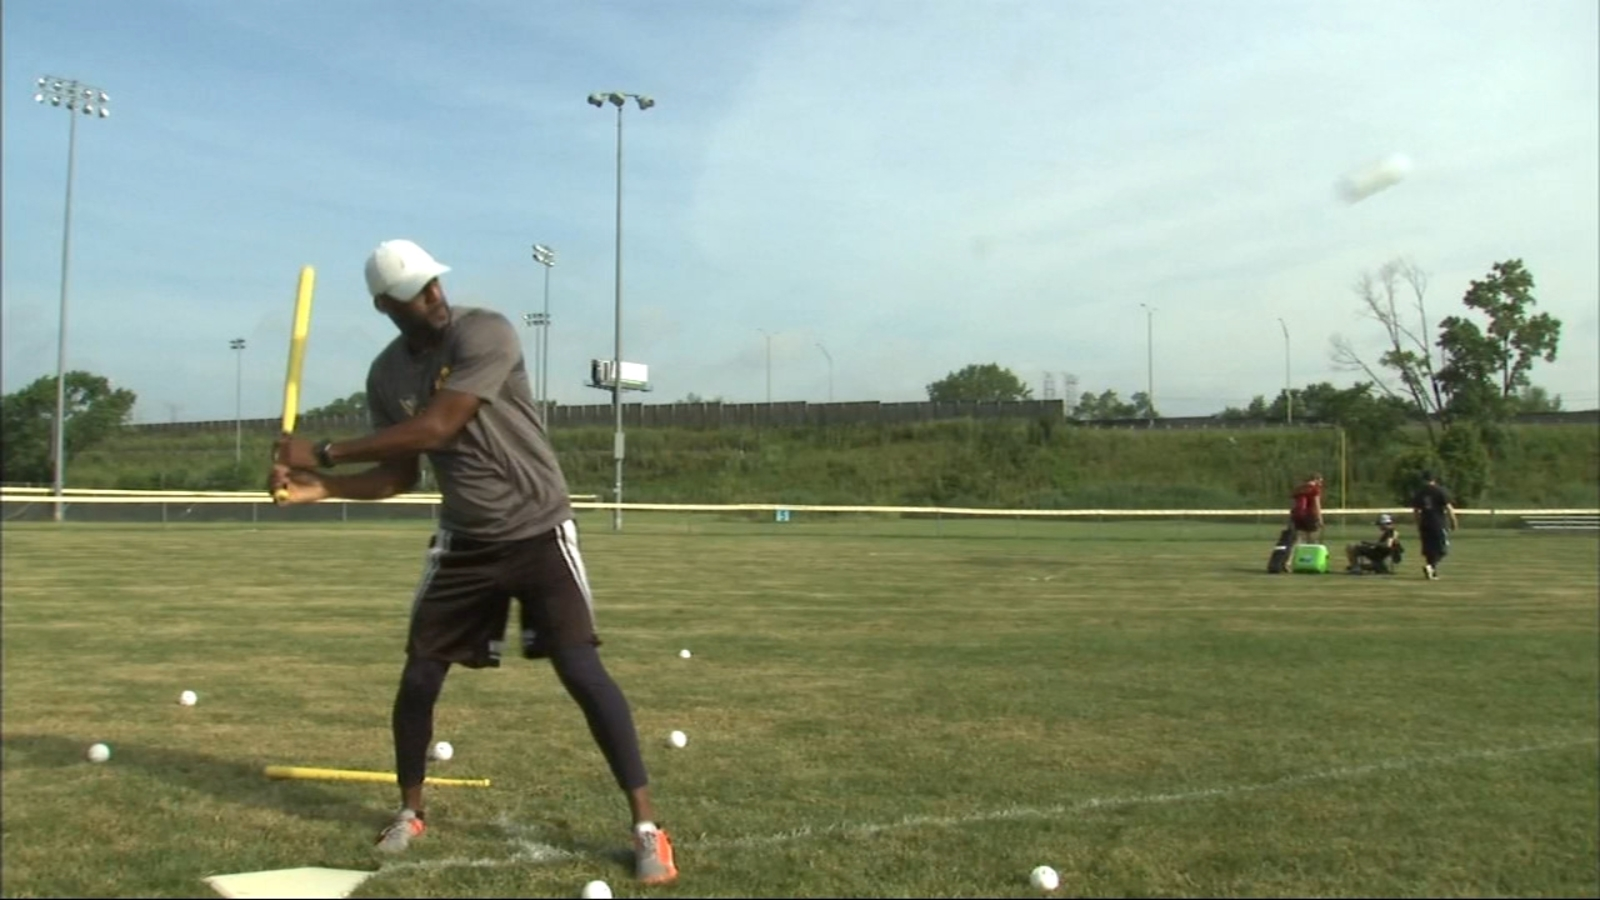 World Wiffle Ball Championship brings friendly competition to Midlothian for its 40th year